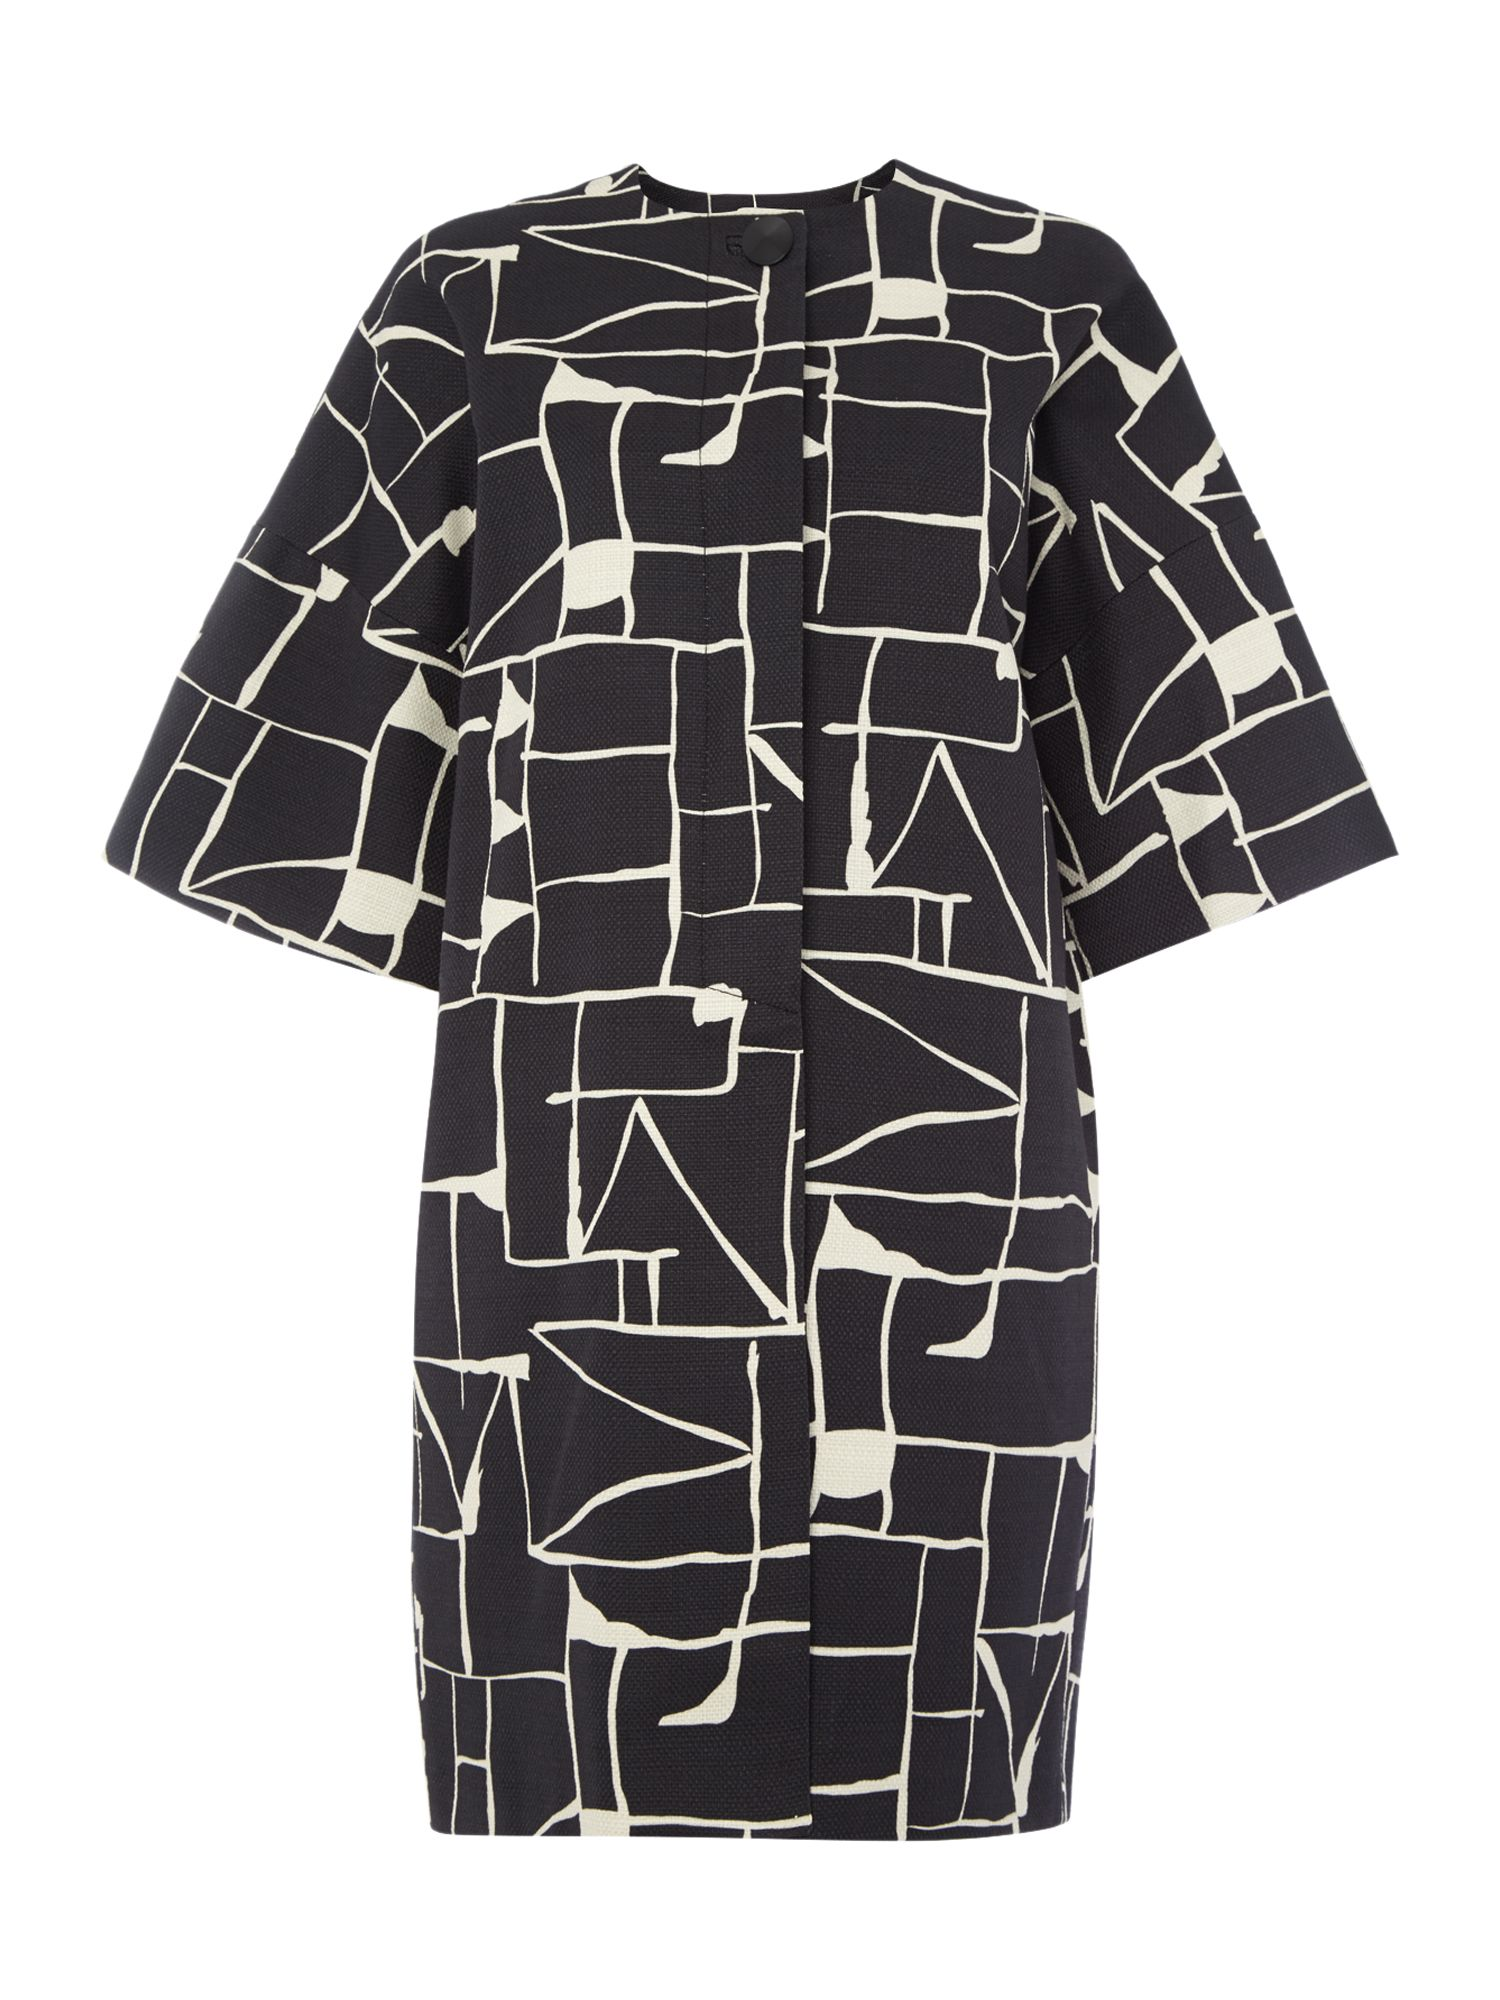 Tara Jarmon Tara Jarmon Graphic print collarless coat, Black